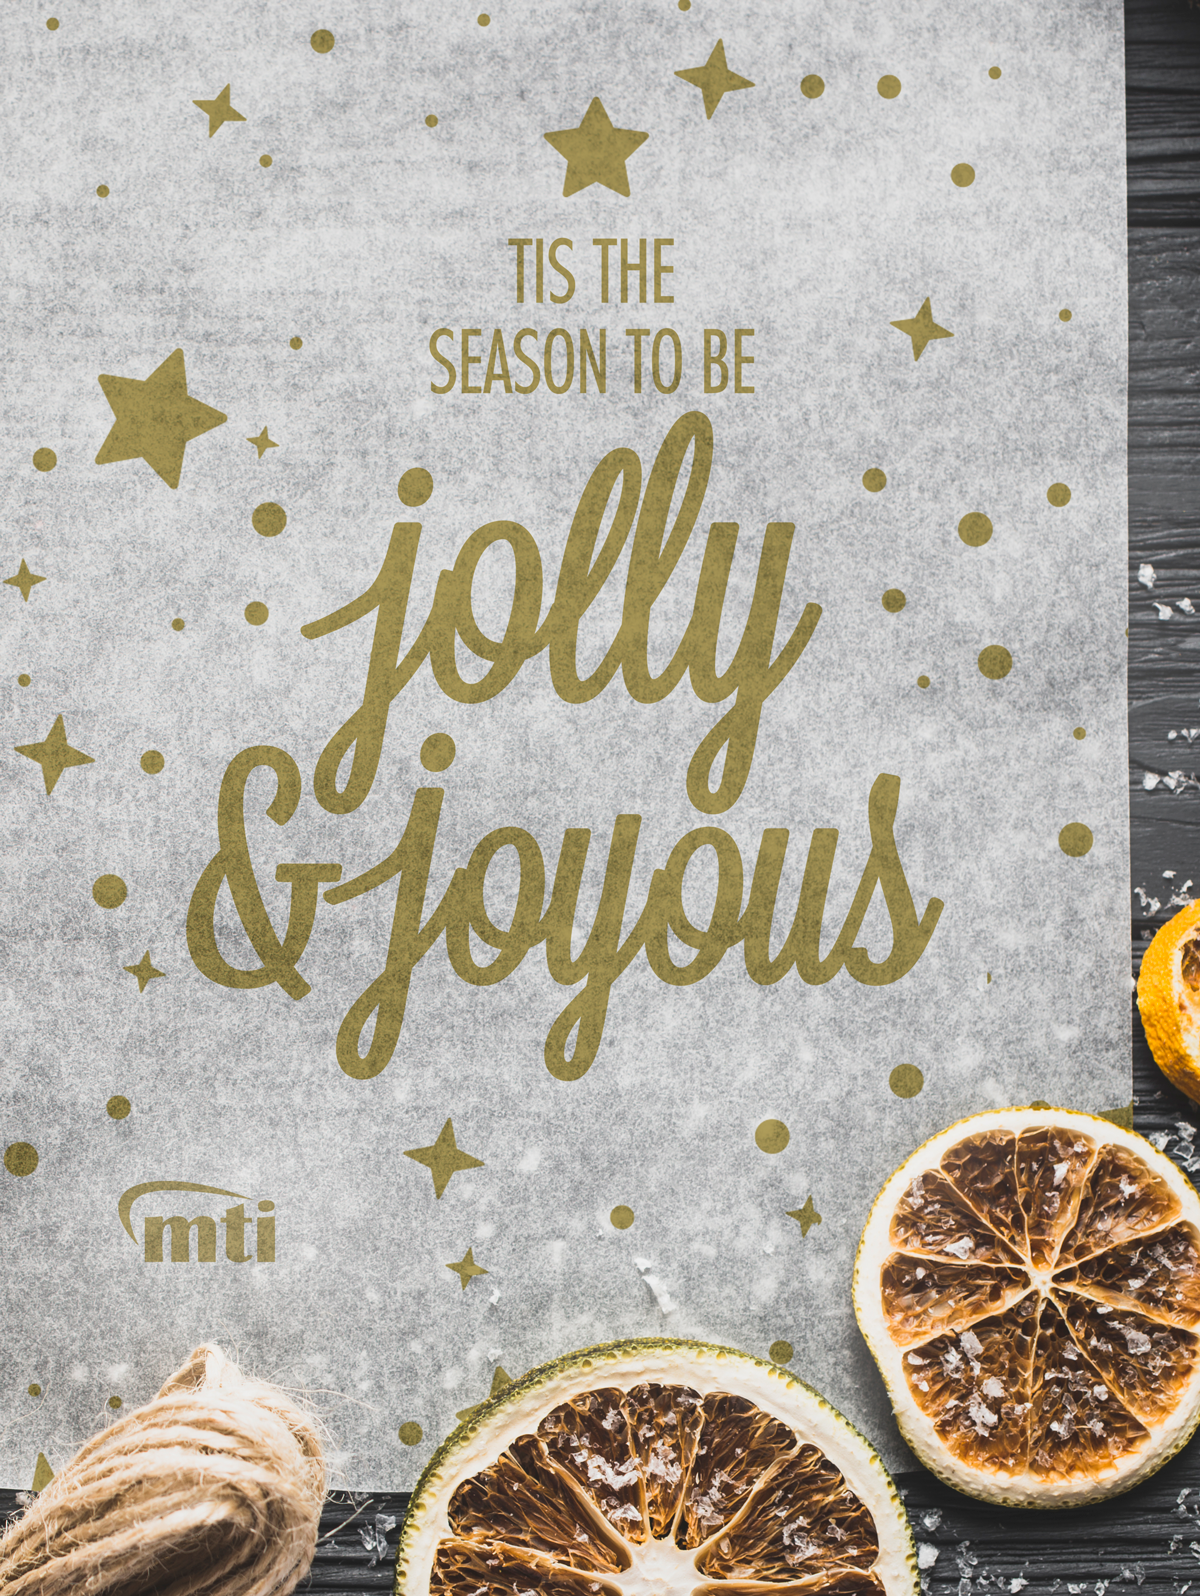 Jolly and Joyous   Christmas Reflections from MTI